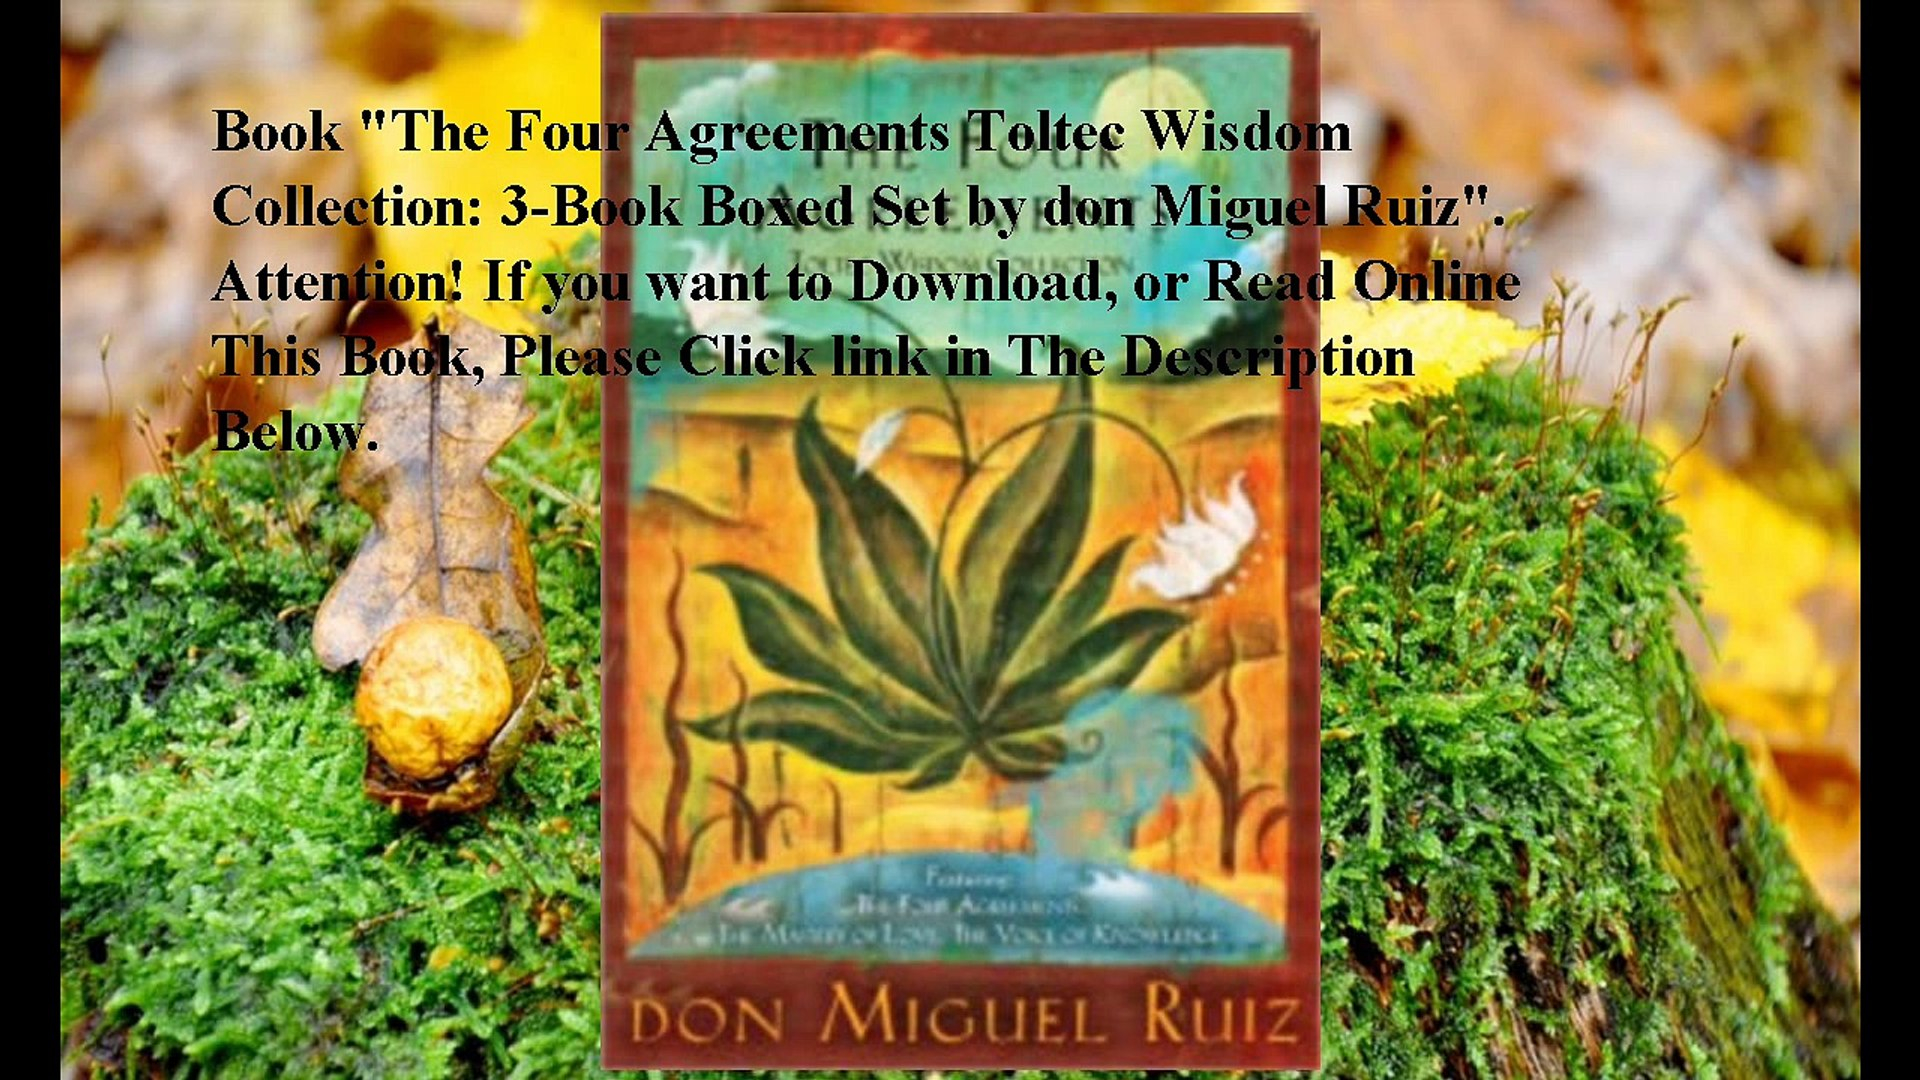 Four Agreements Book Free Download Download The Four Agreements Toltec Wisdom Collection 3 Book Boxed Set Ebook Pdf